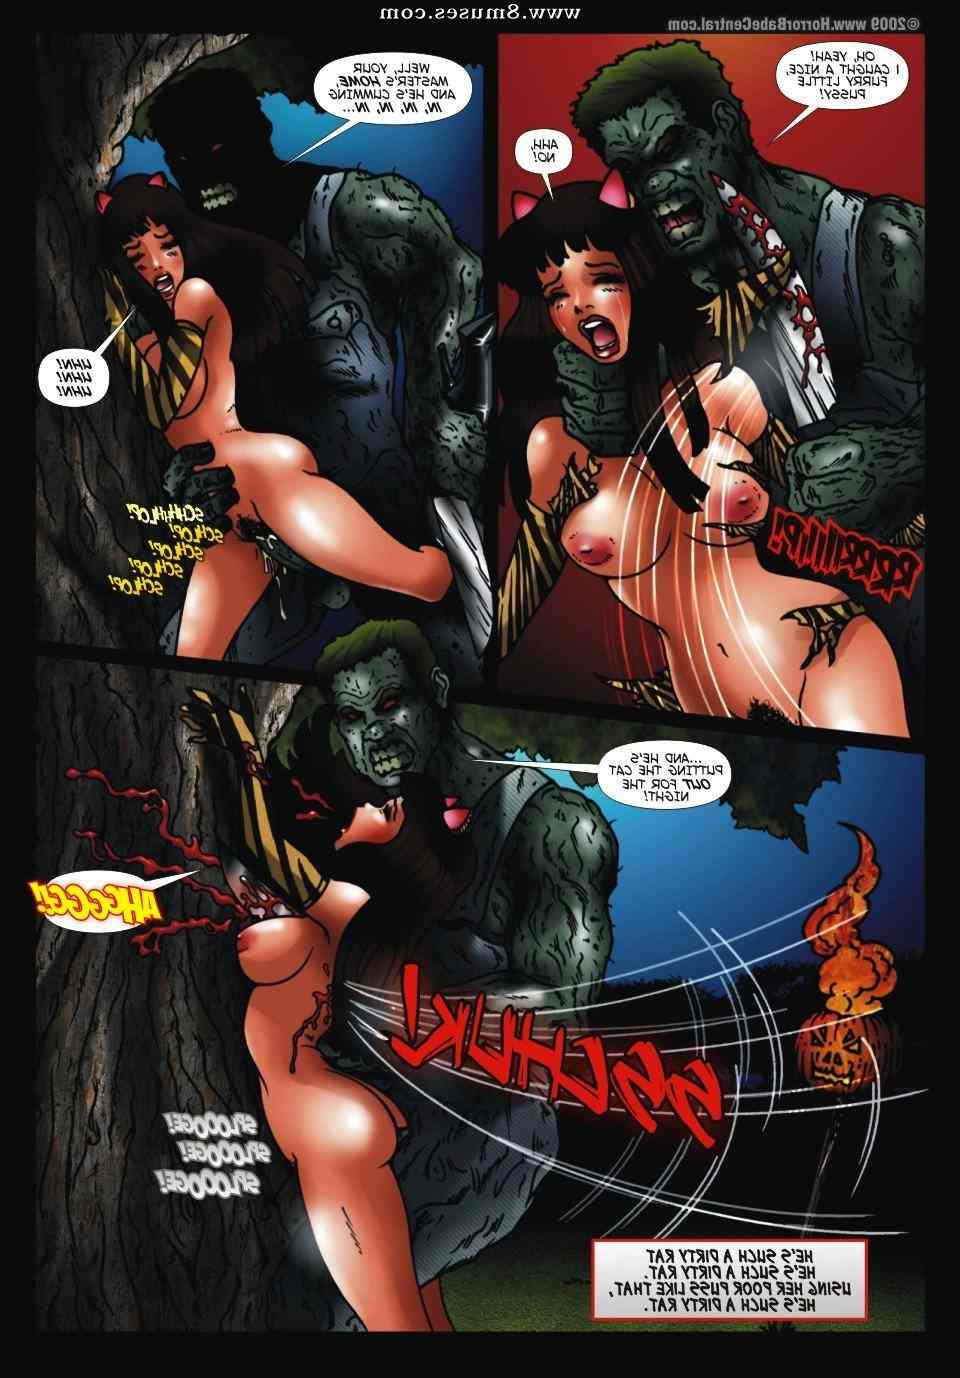 Central-Comics/Horror-Babe-Central/Fable-of-Fright Fable_of_Fright__8muses_-_Sex_and_Porn_Comics_108.jpg